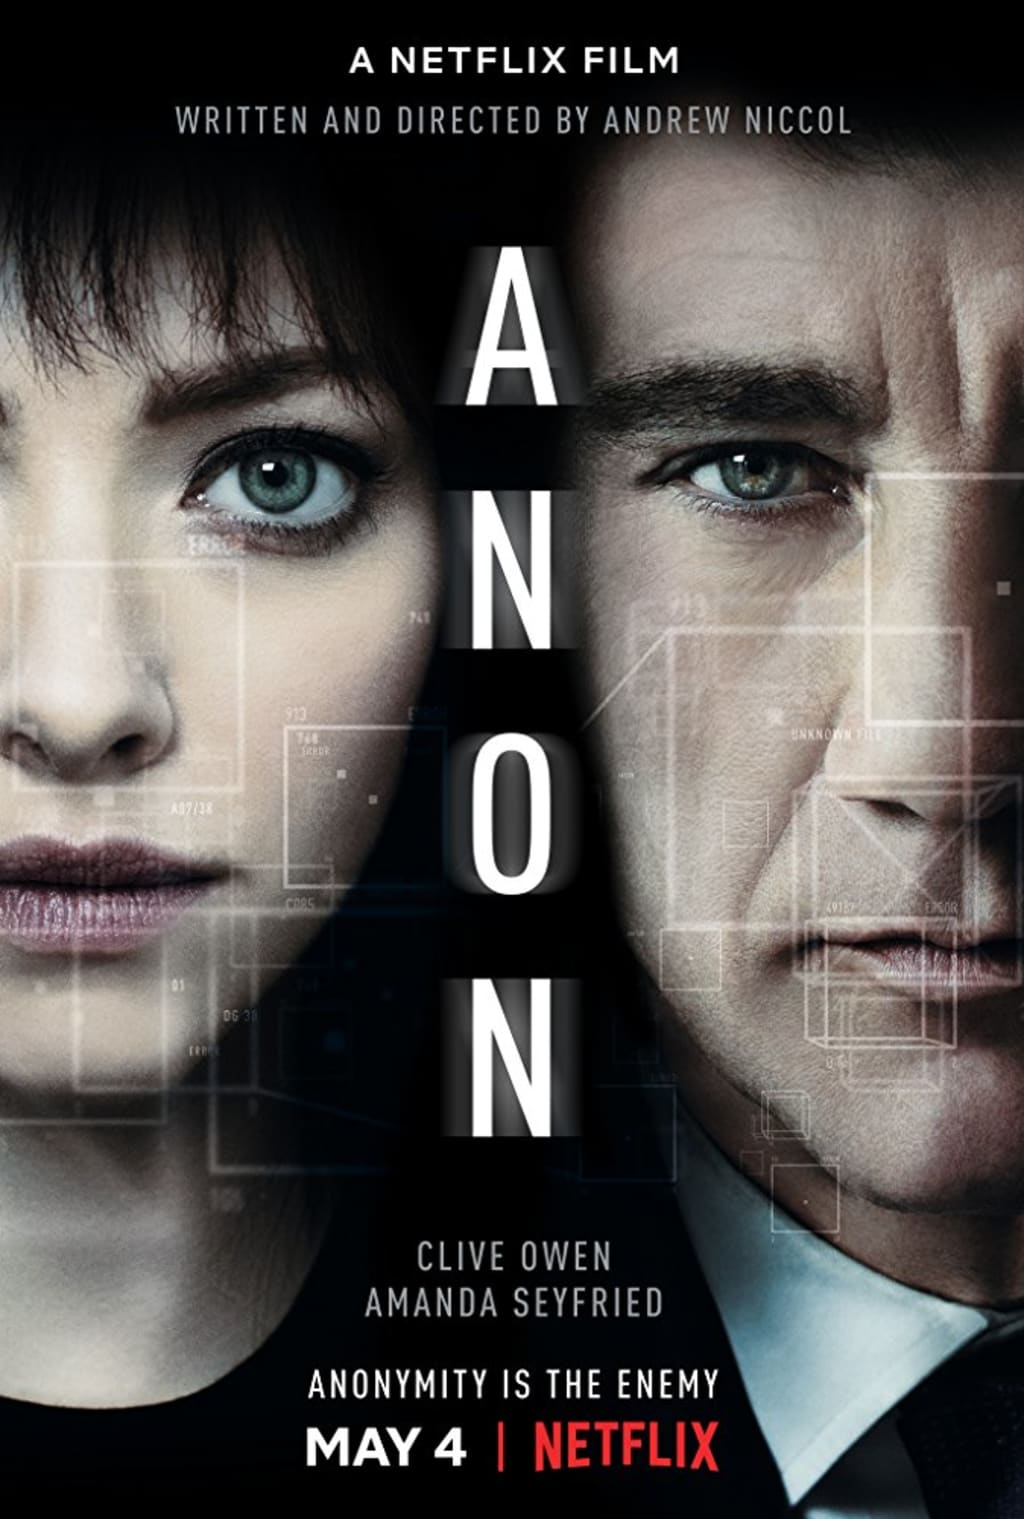 Review of 'Anon'